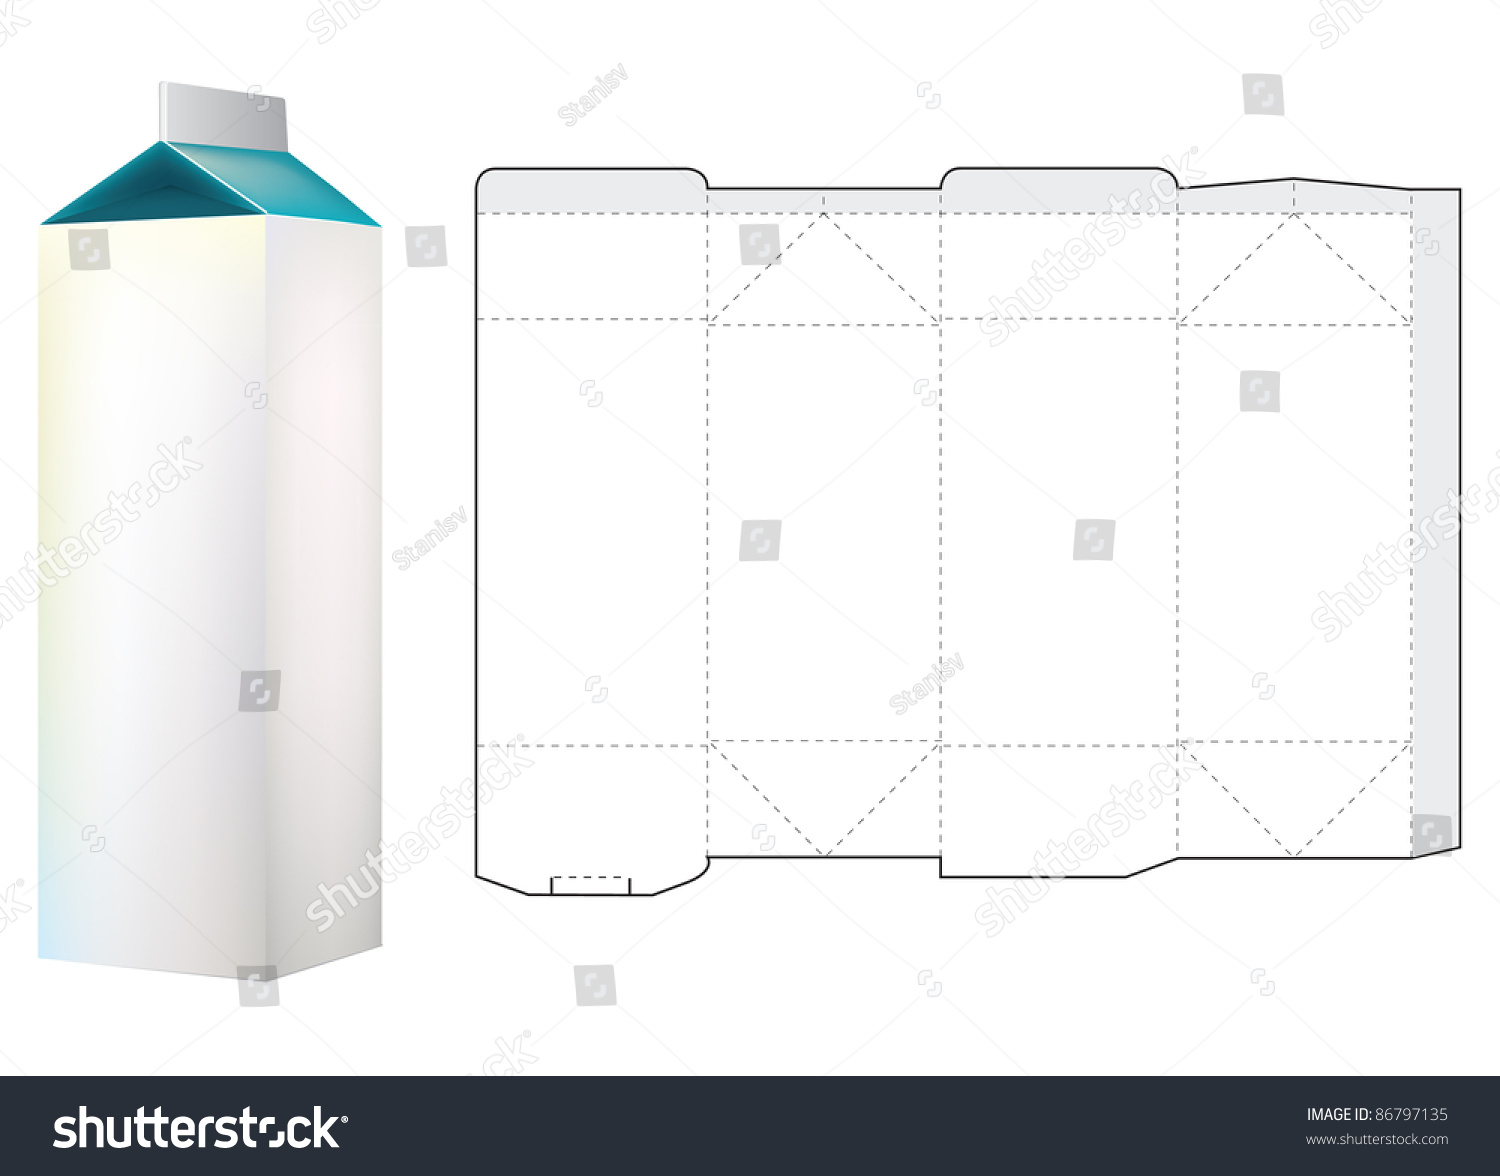 Template Of Milk Carton Box 86797135